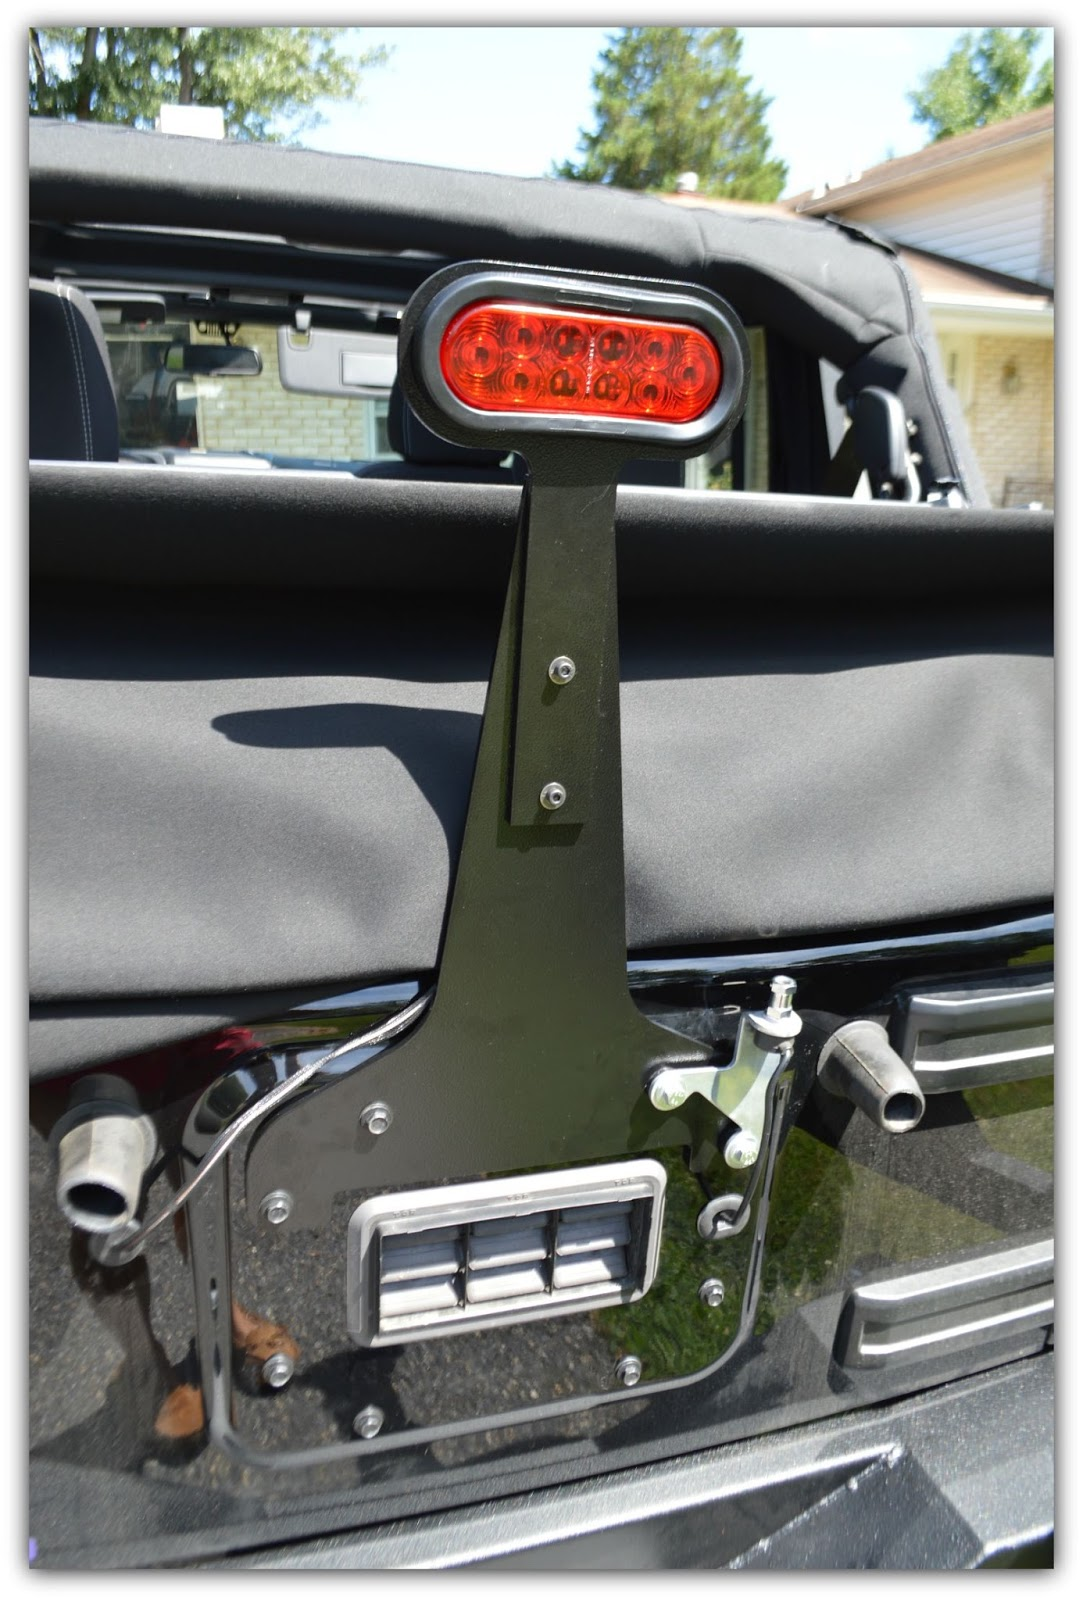 Third Brake Light Law 72 Nova Dash Wiring Diagram Jeep Momma Blog Wrangler Mods Sorting Out The In Section On Lights There Is No Mention Of A Requirement For Operable